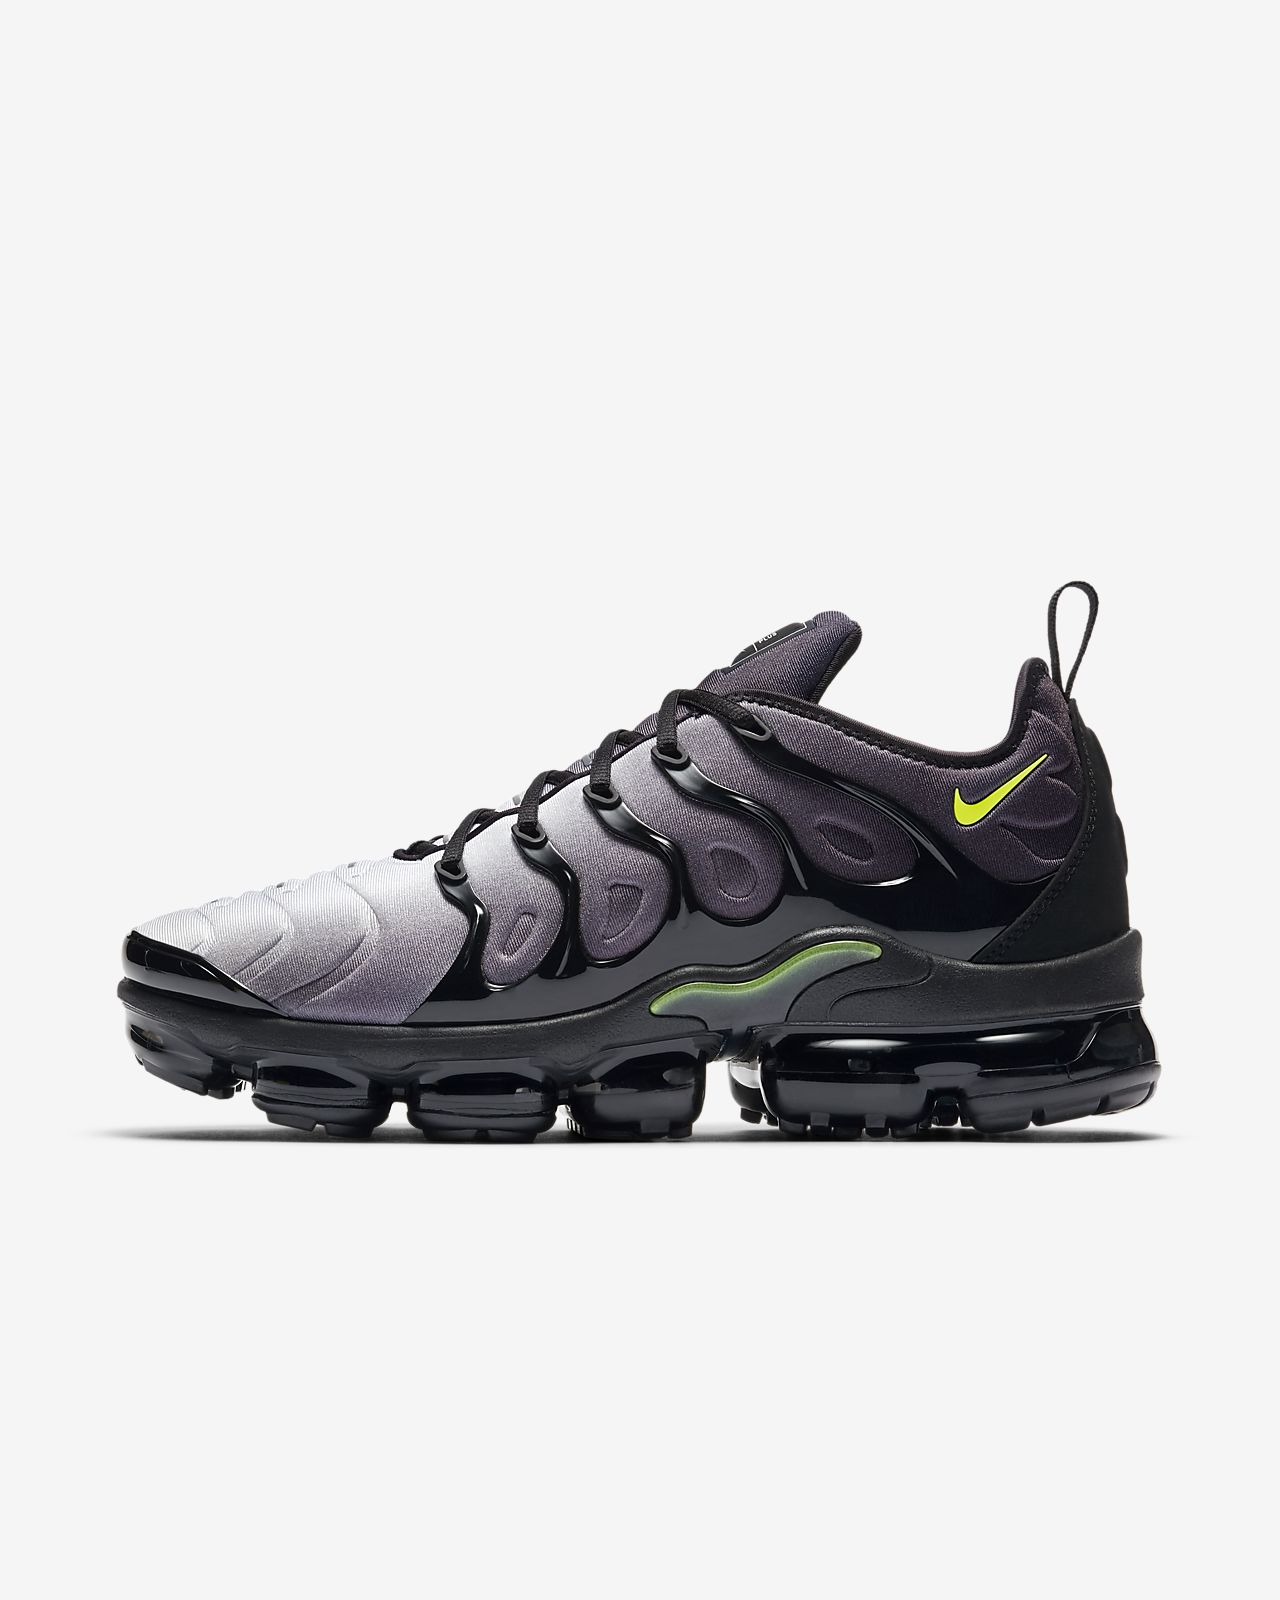 Nike Air Vapormax Plus (Black/Volt-White) Men's Shoes 924453-009